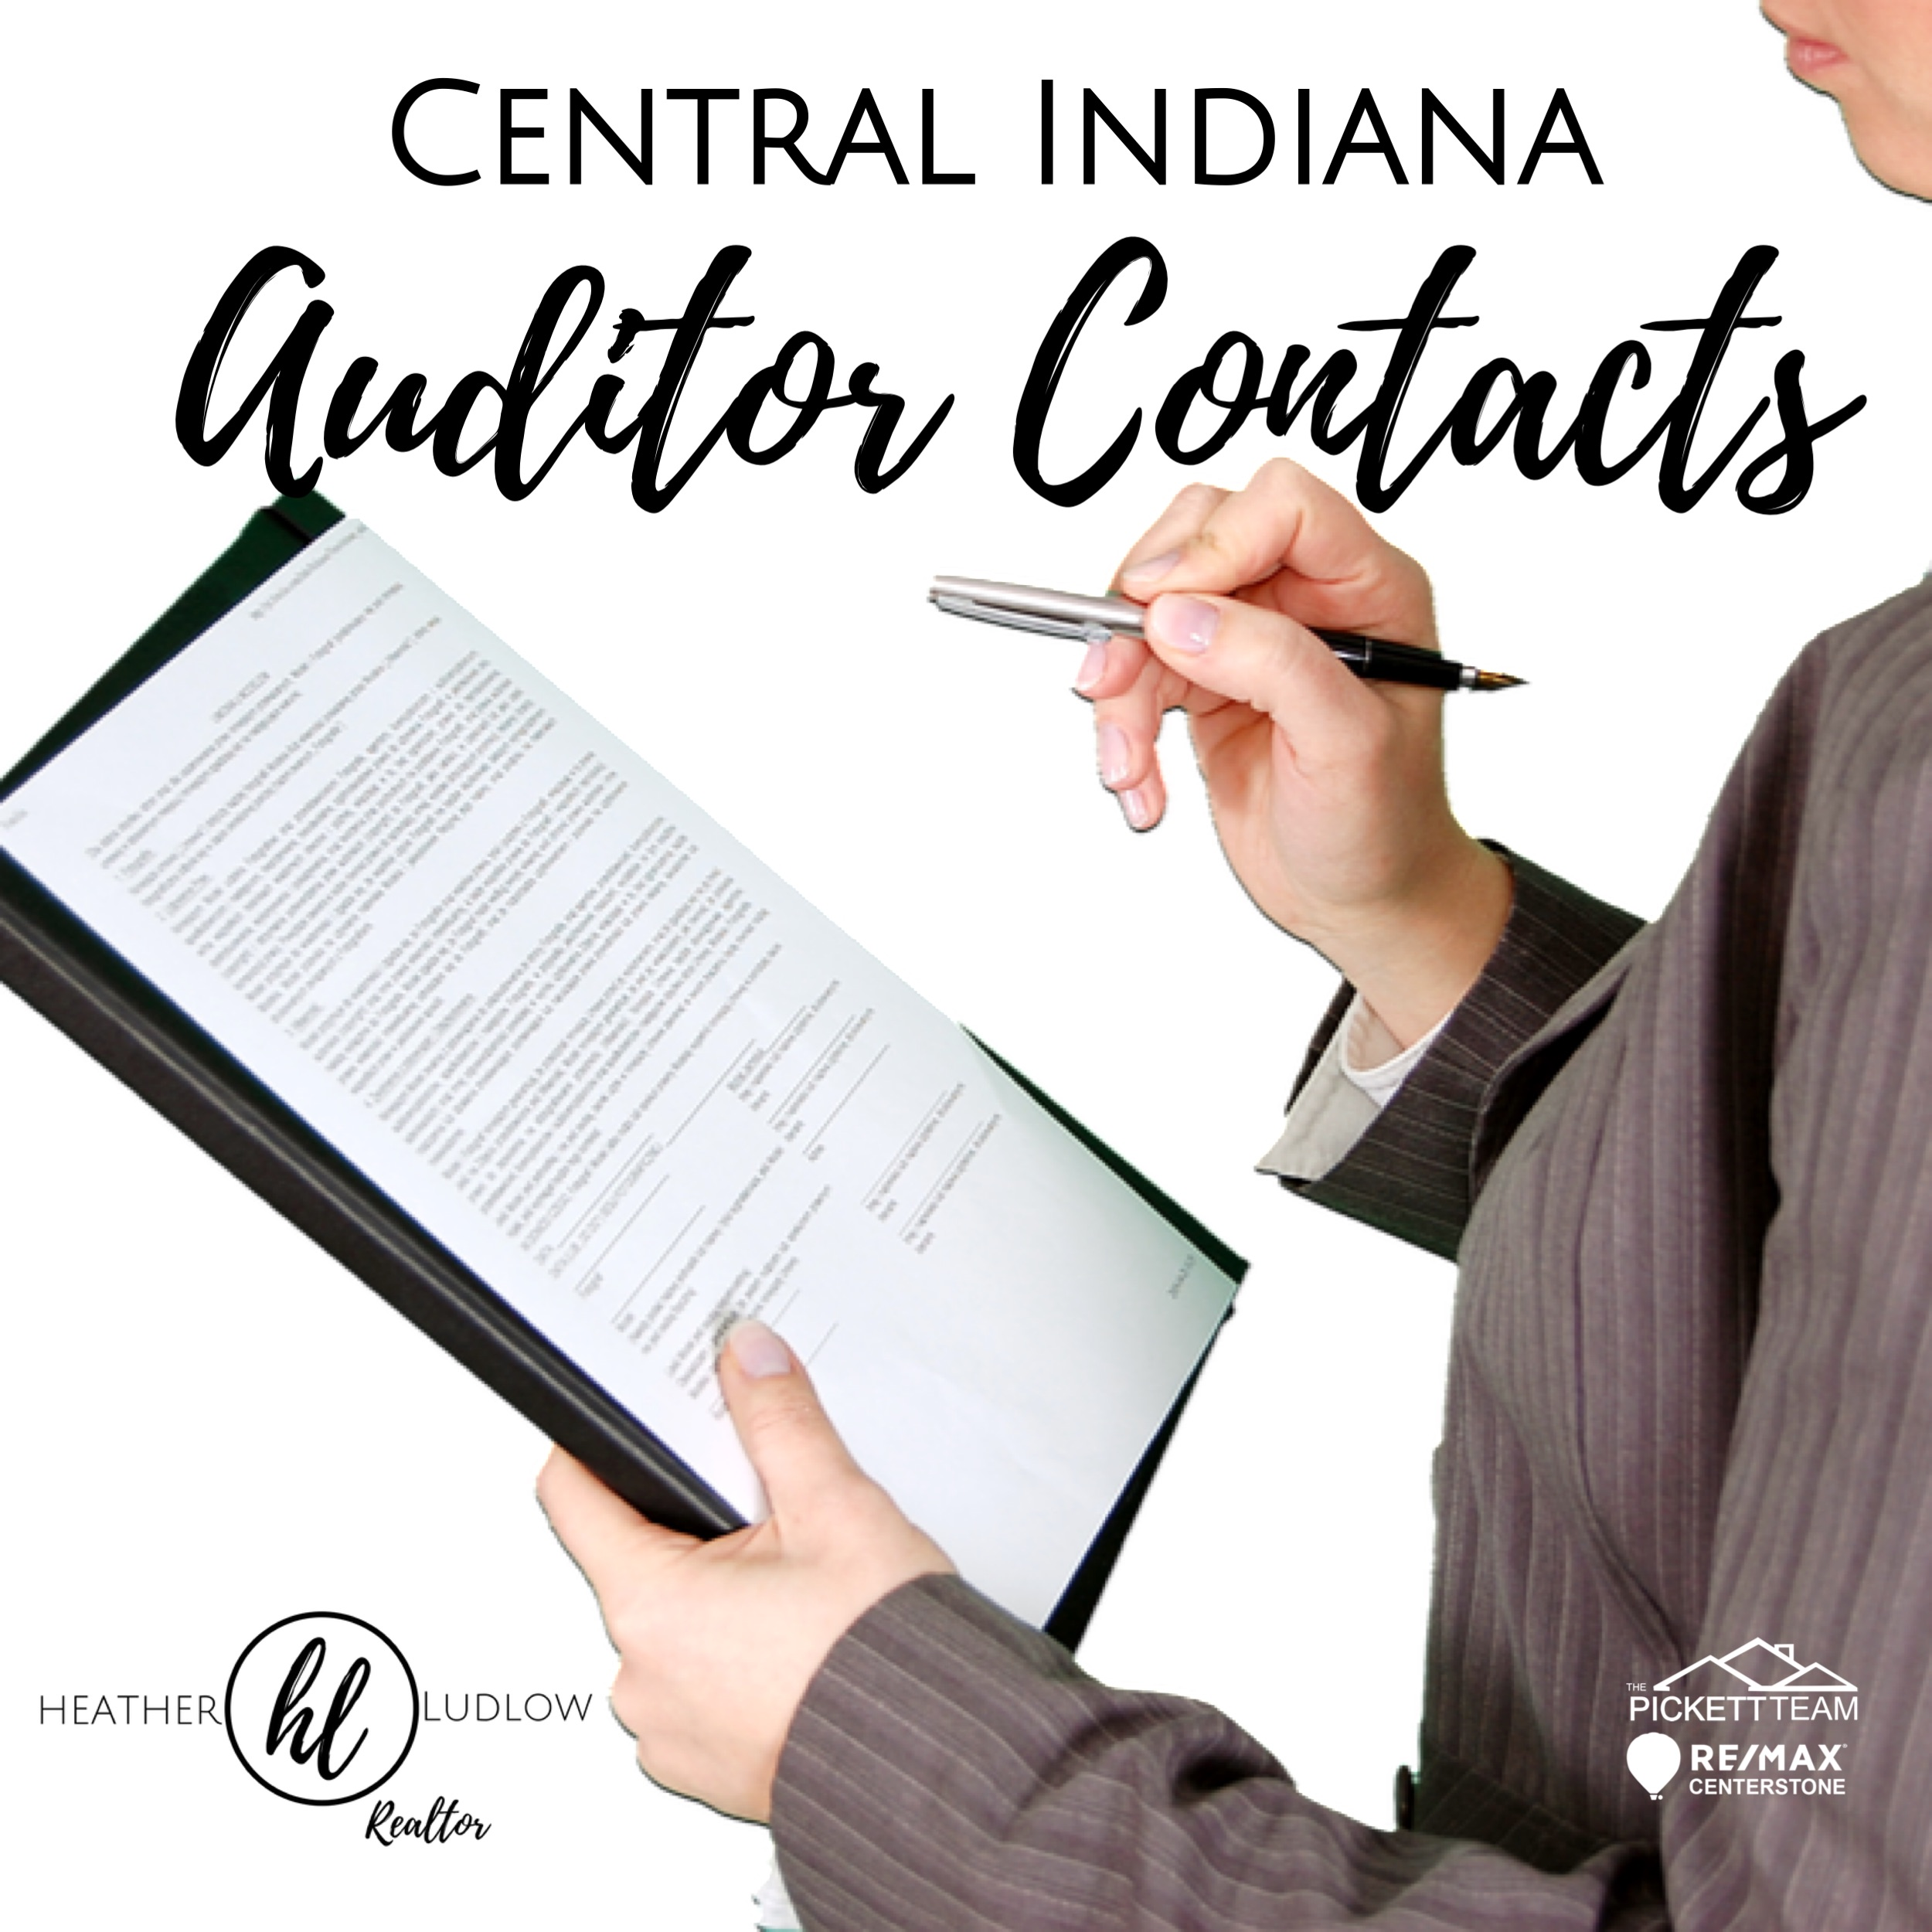 Central Indiana Auditor Contacts and Property Tax forms